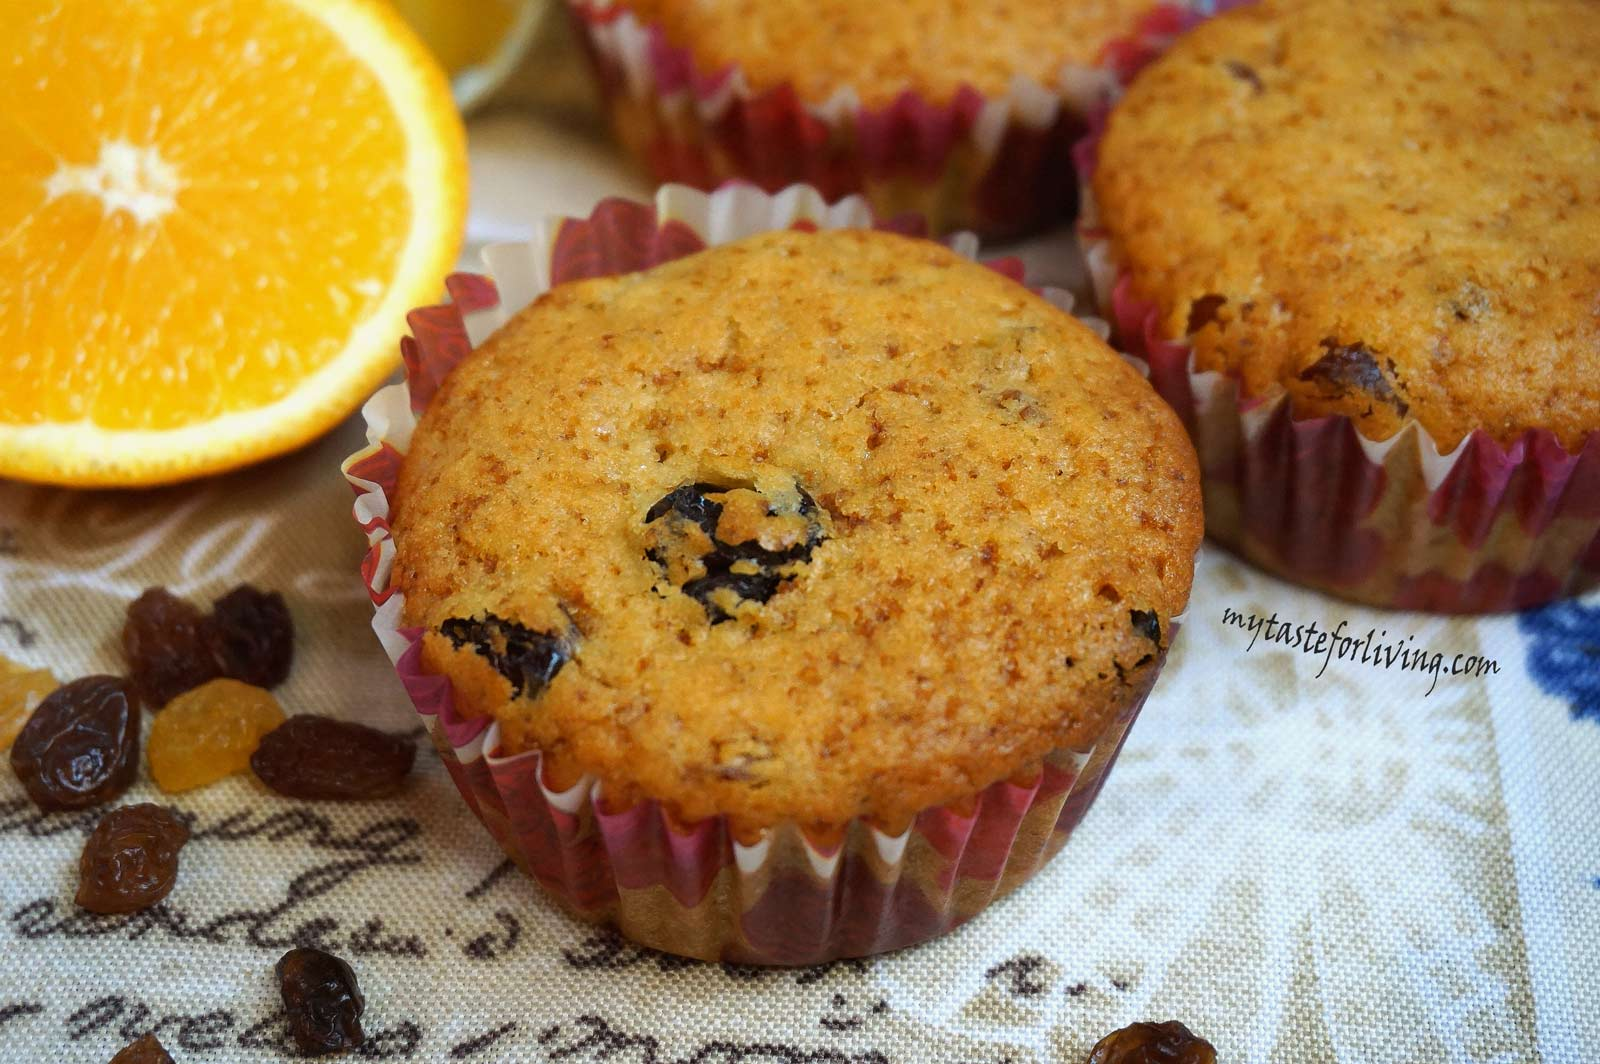 Delicious orange muffins with raisins, which are prepared easily and quickly without eggs and dairy products.